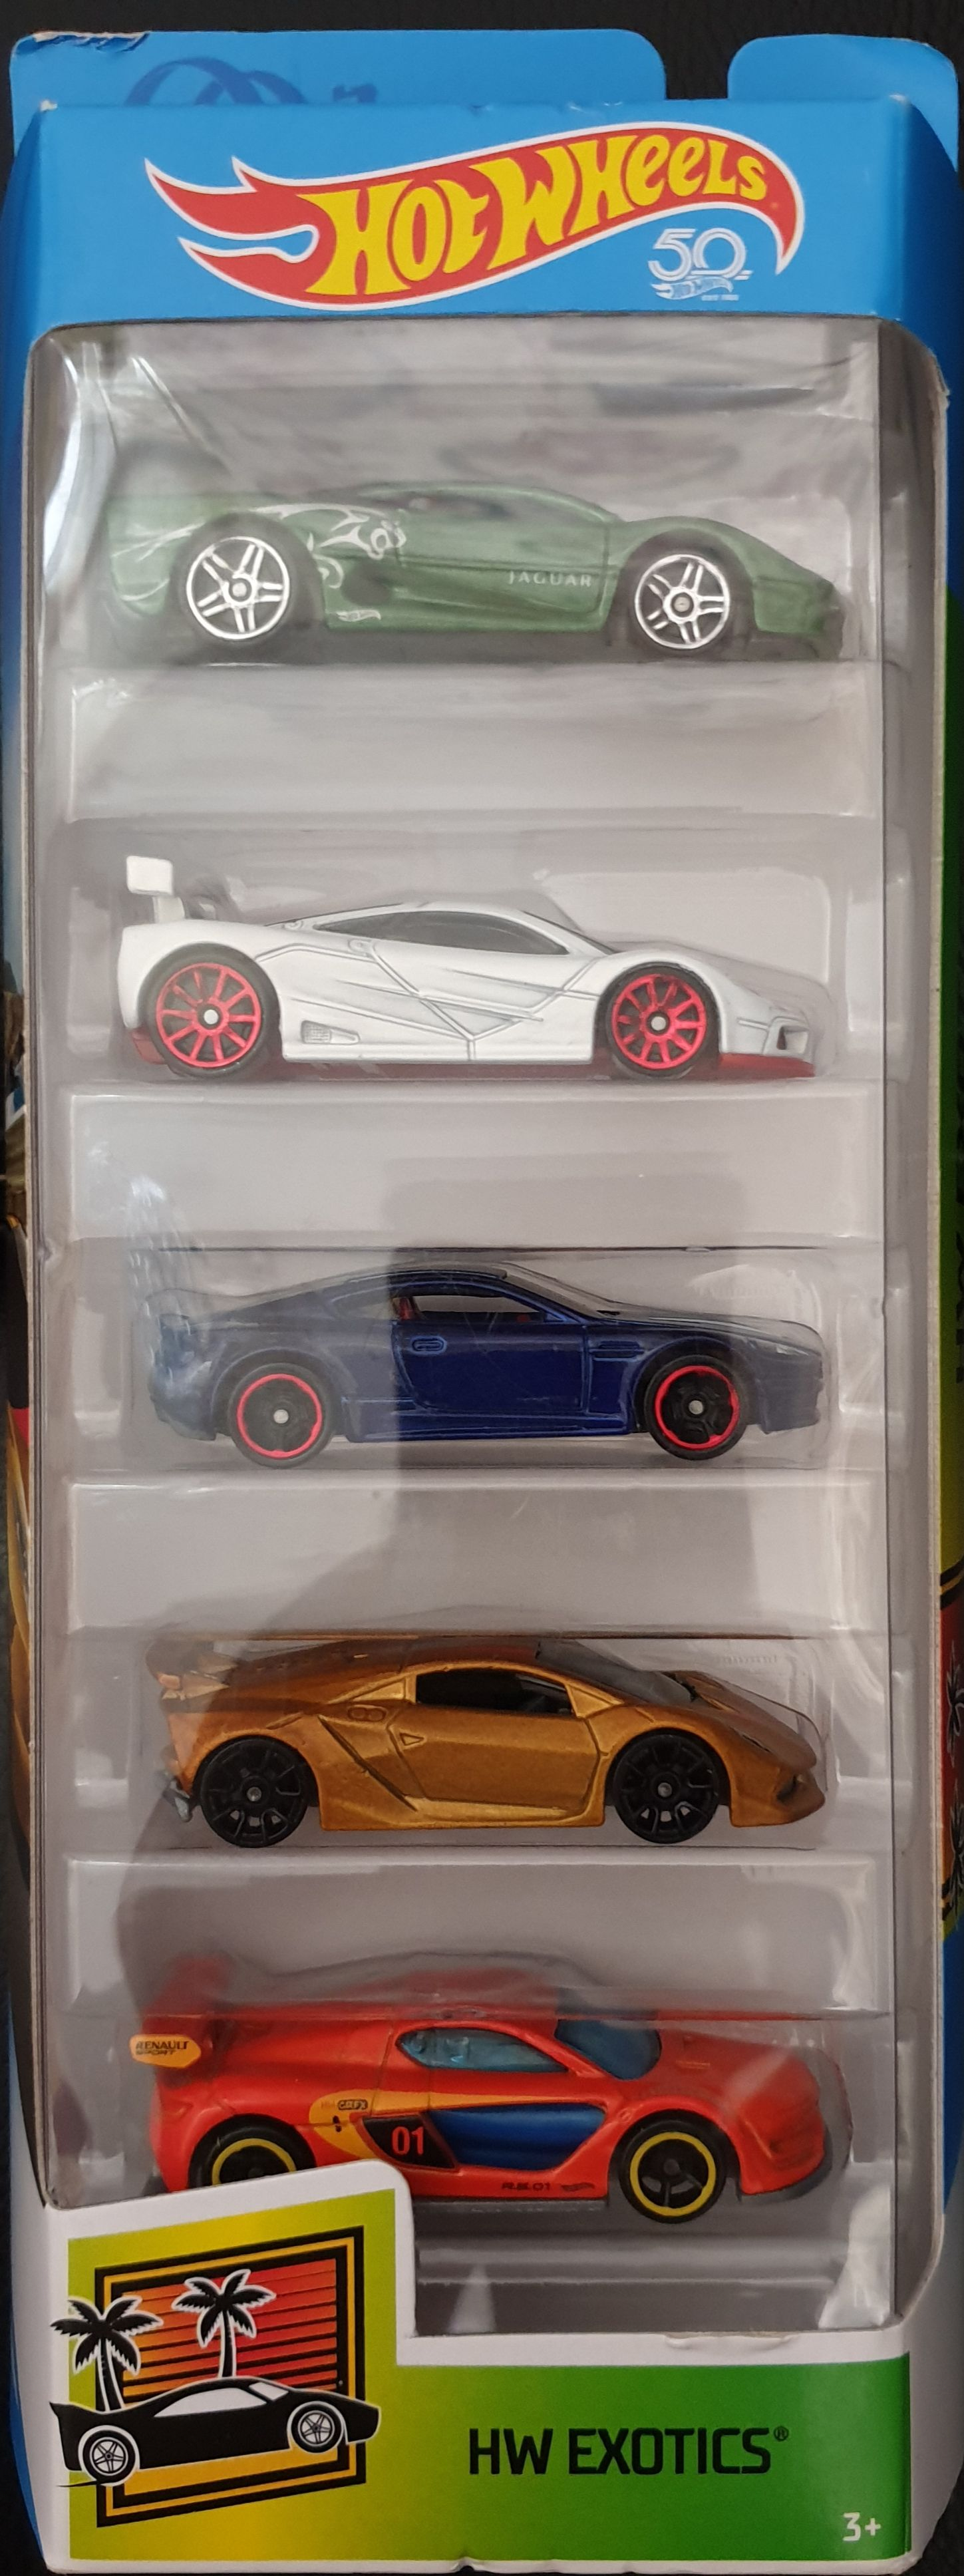 2018 HW Exotics 5 Pack : Lamborghini Sesto Elemento Toy Car, Die Cast, And Hot Wheels (2018) back image (back cover, second image)